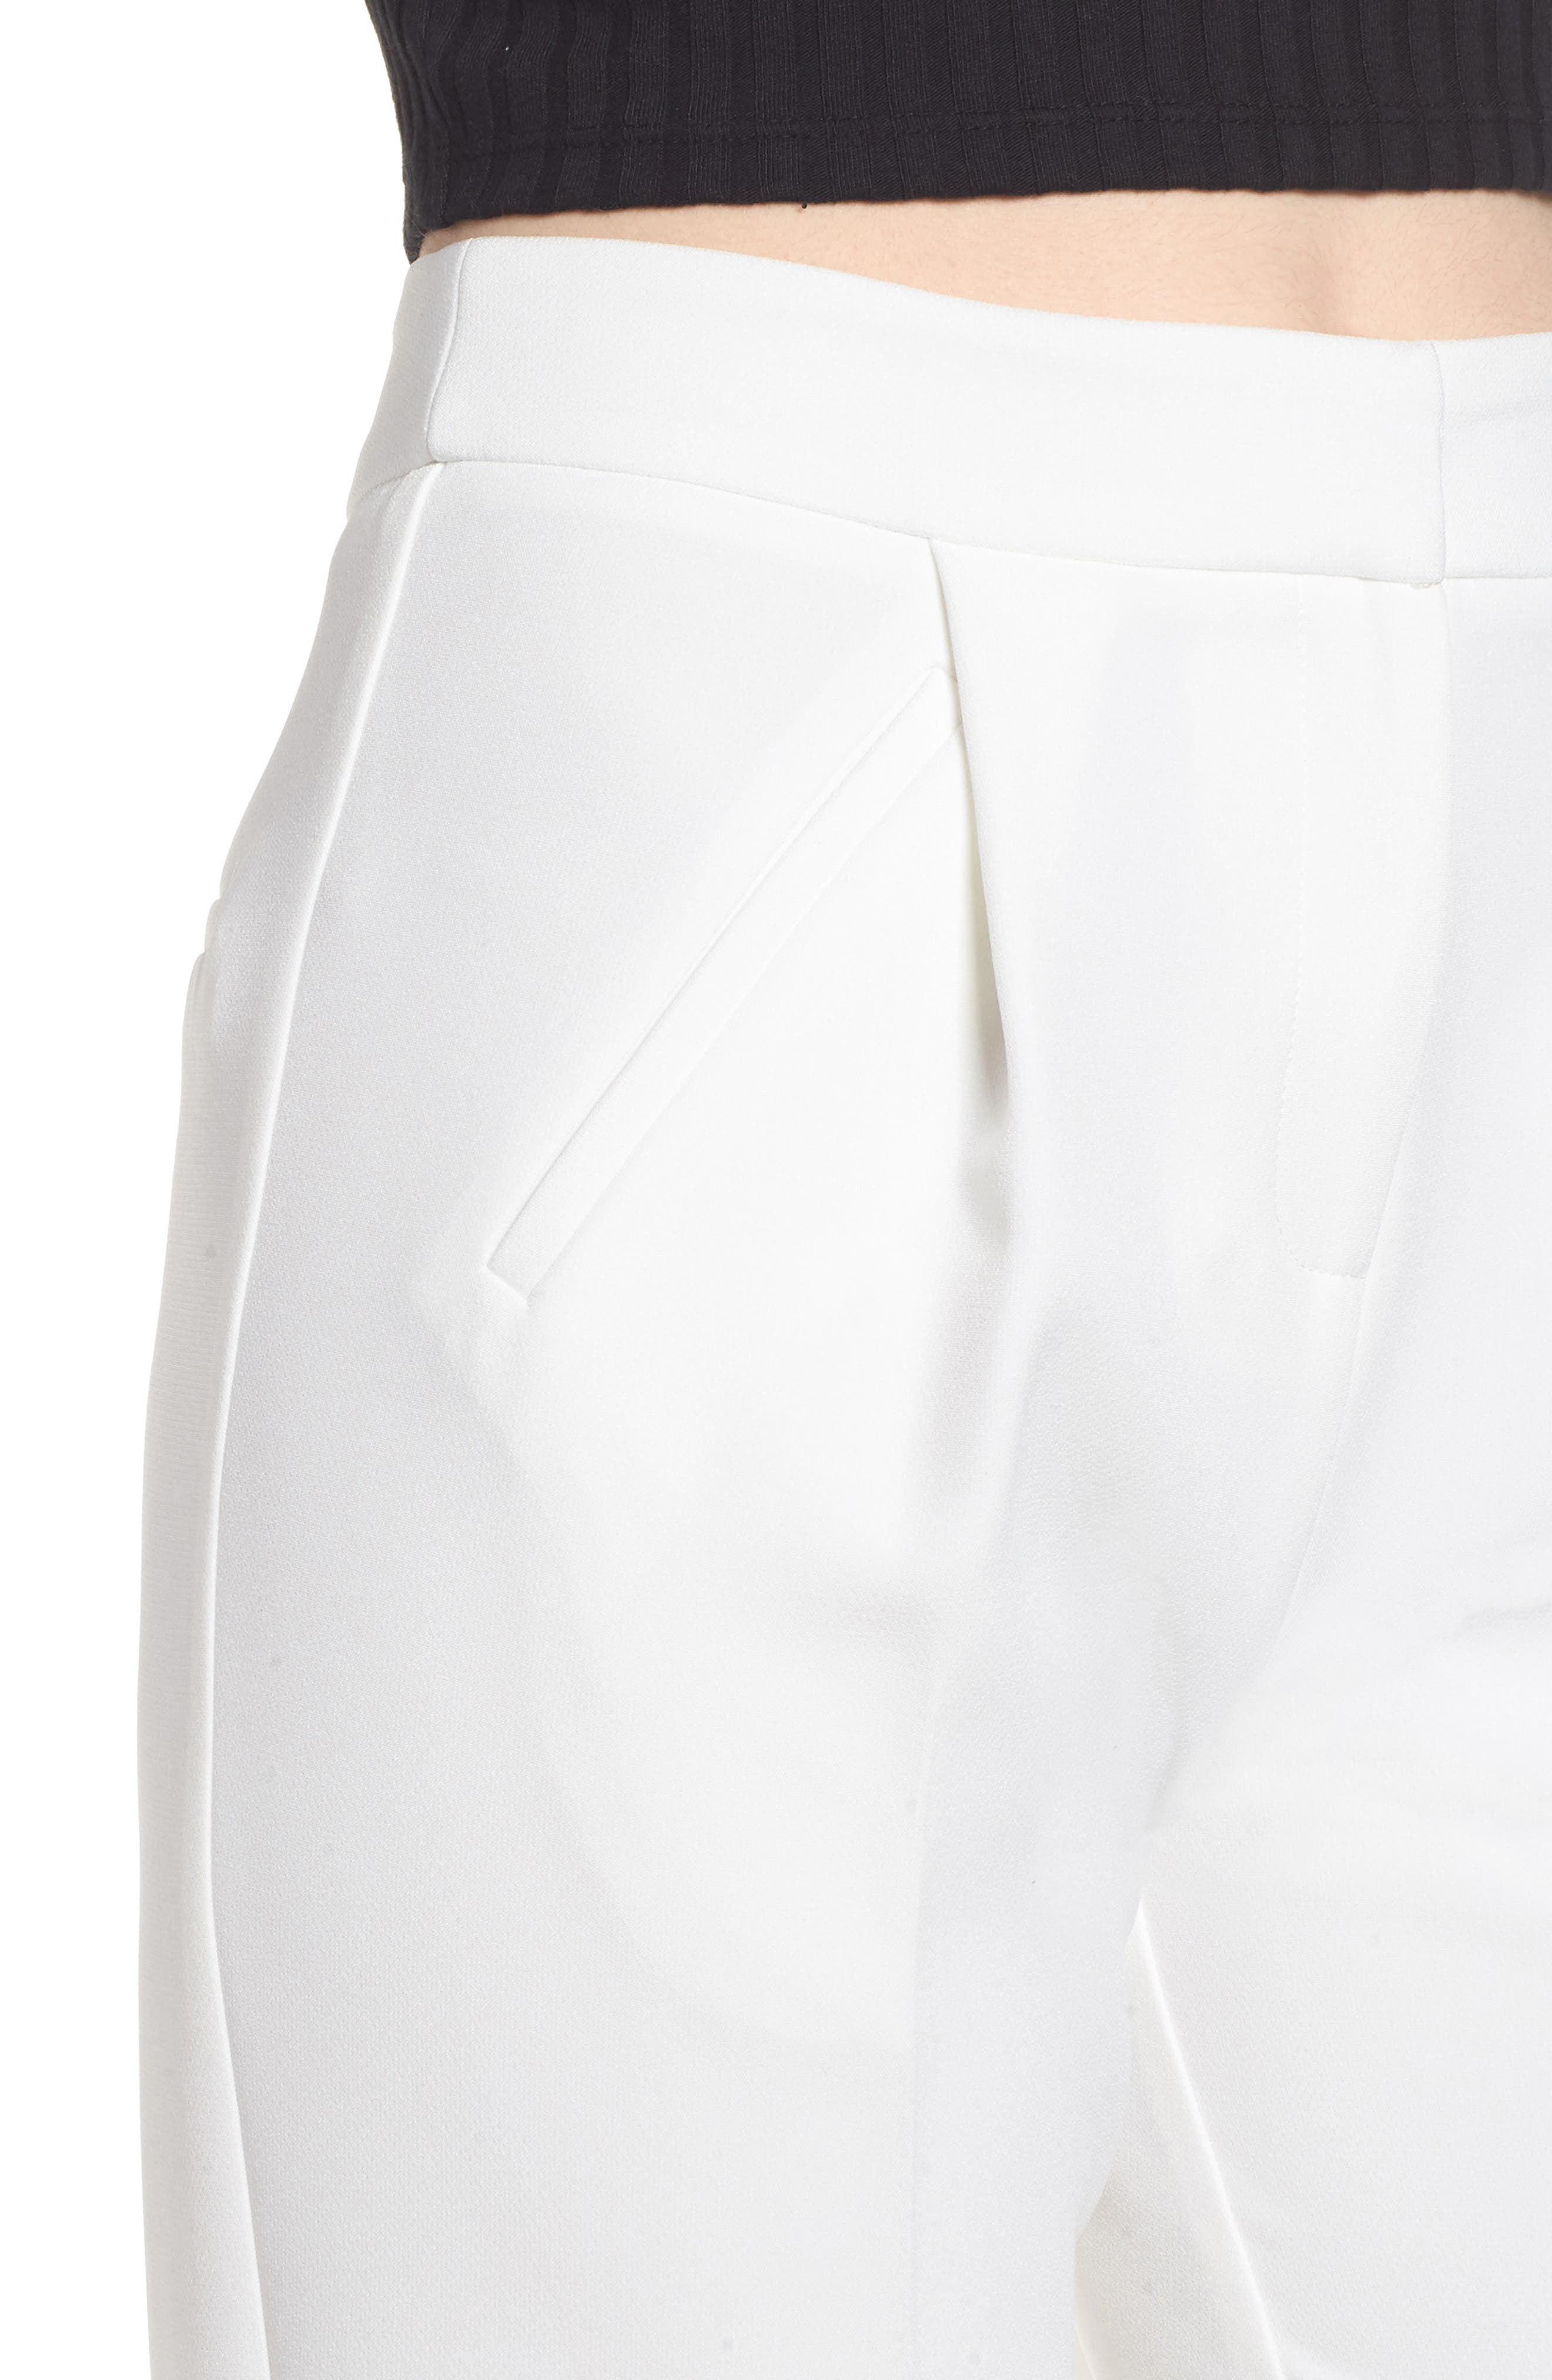 Clean Pocket Peg Trousers,                             Alternate thumbnail 4, color,                             900